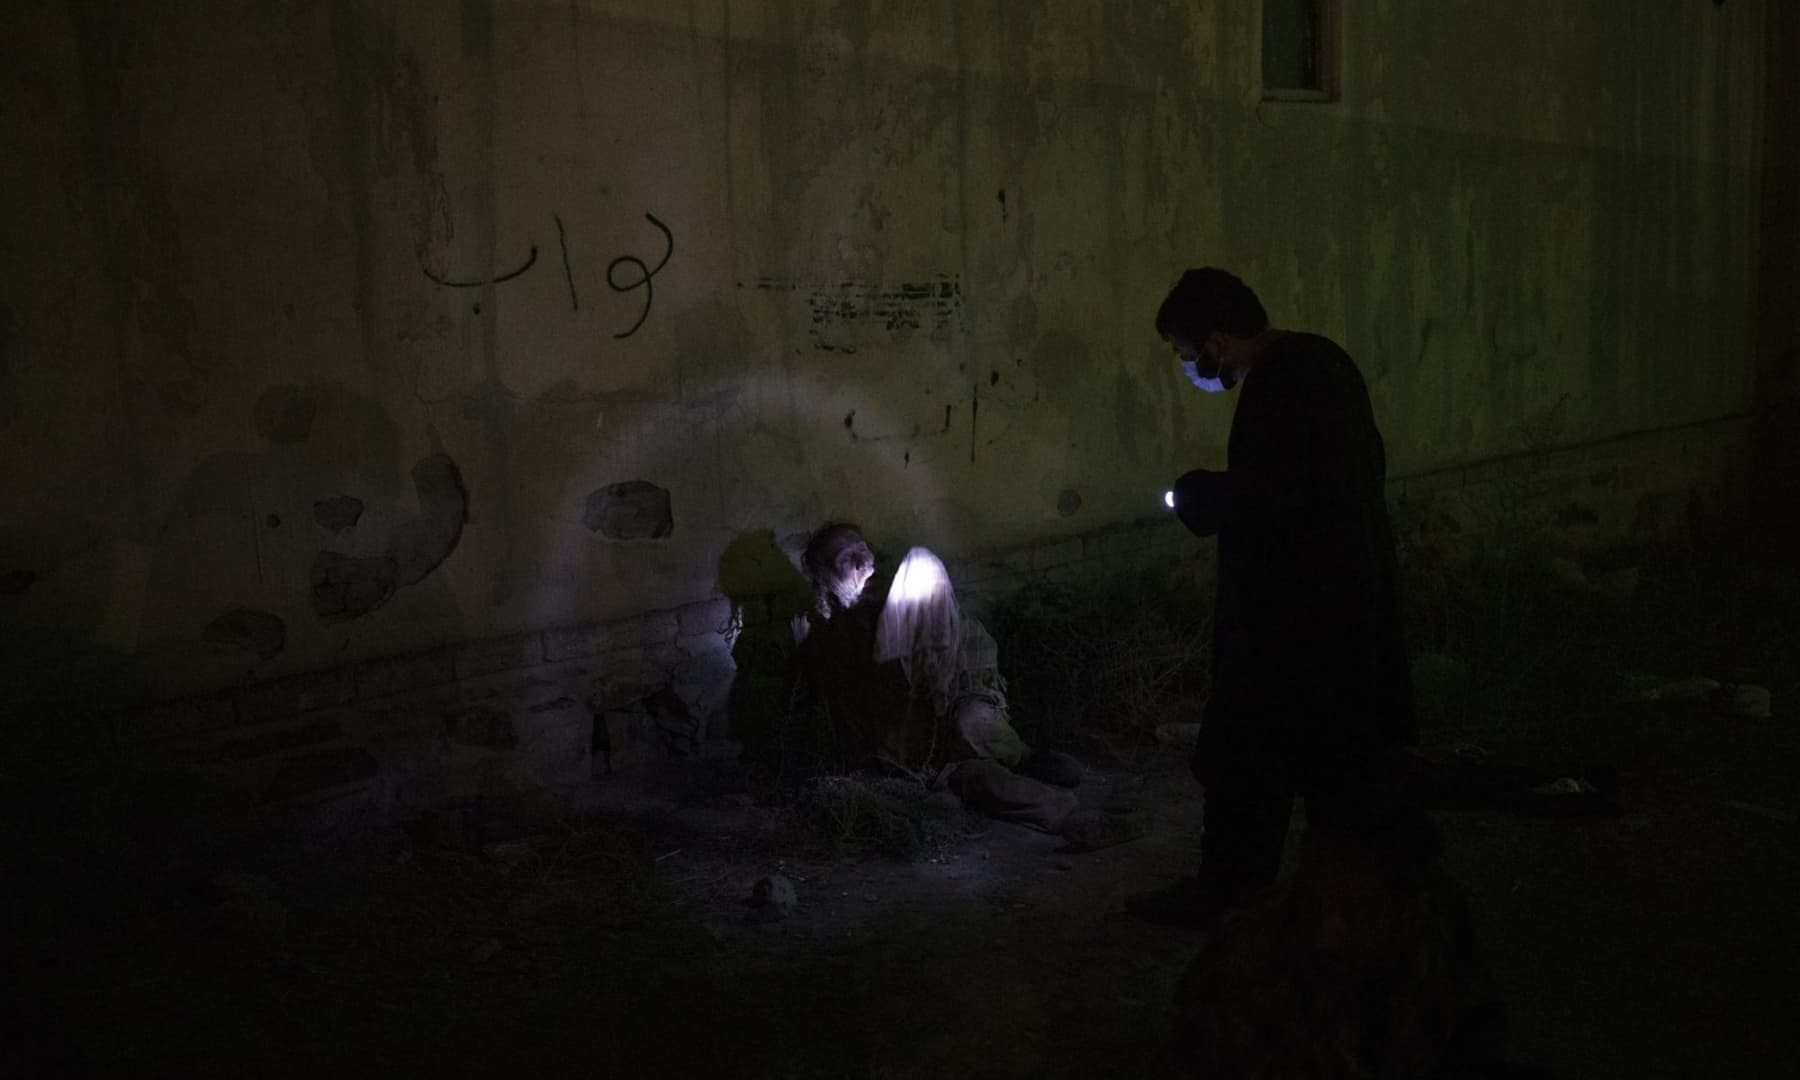 A Taliban fighter uses a flashlight to wake up a drug user detained during a police raid in Kabul, Afghanistan, October 1, 2021. — AP